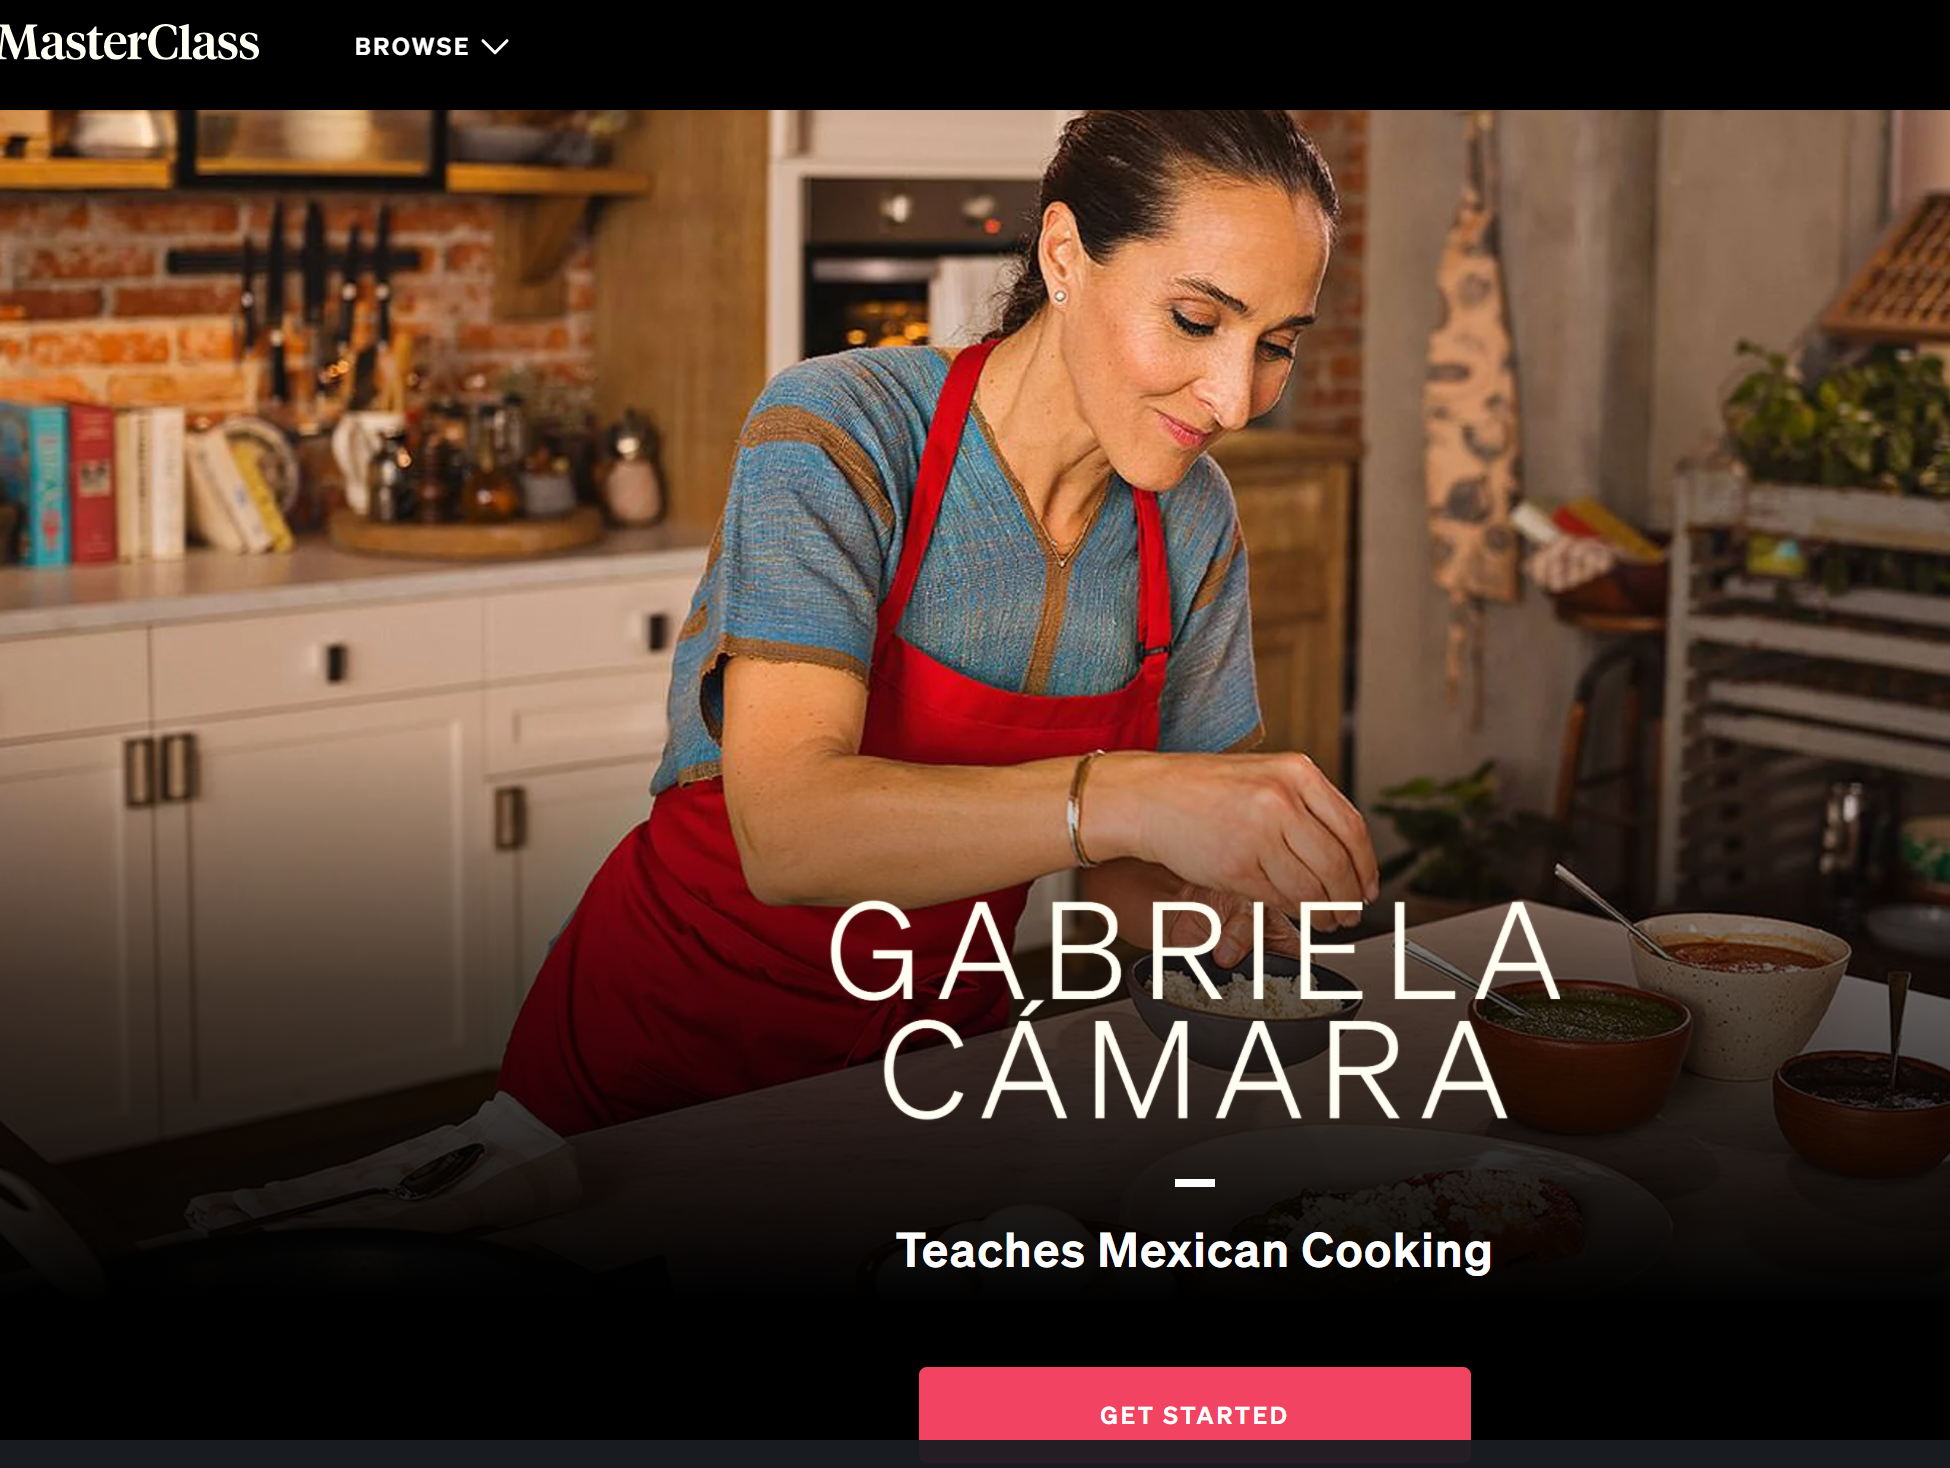 gabriela camara Masterclass Reviews